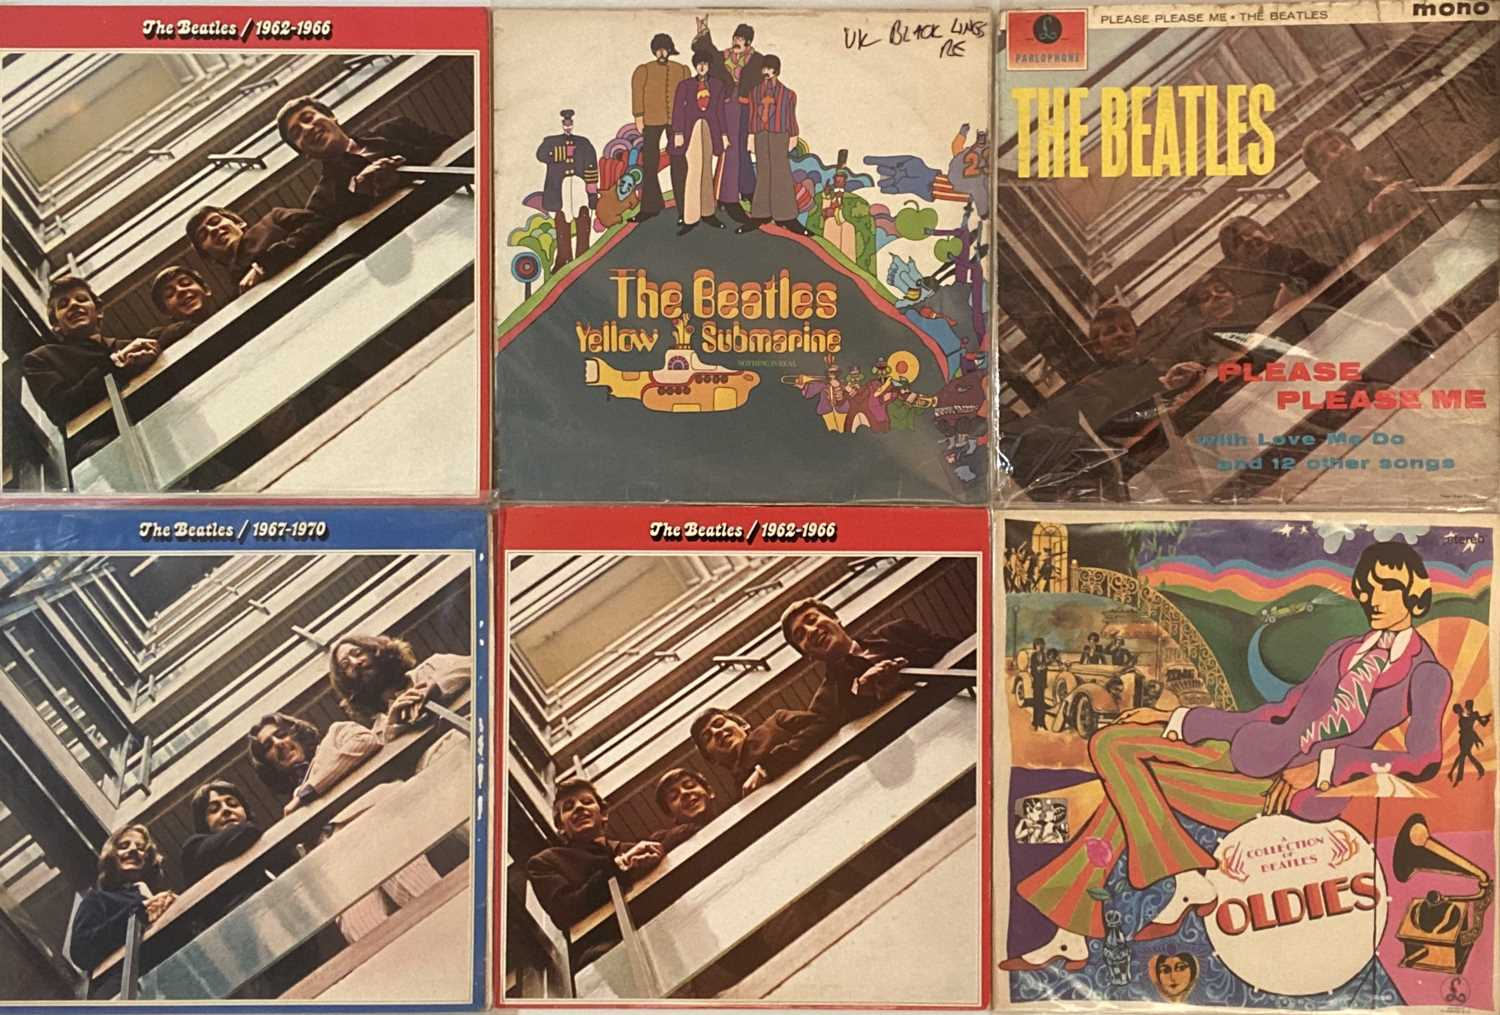 THE BEATLES AND RELATED - LPs - Image 2 of 4